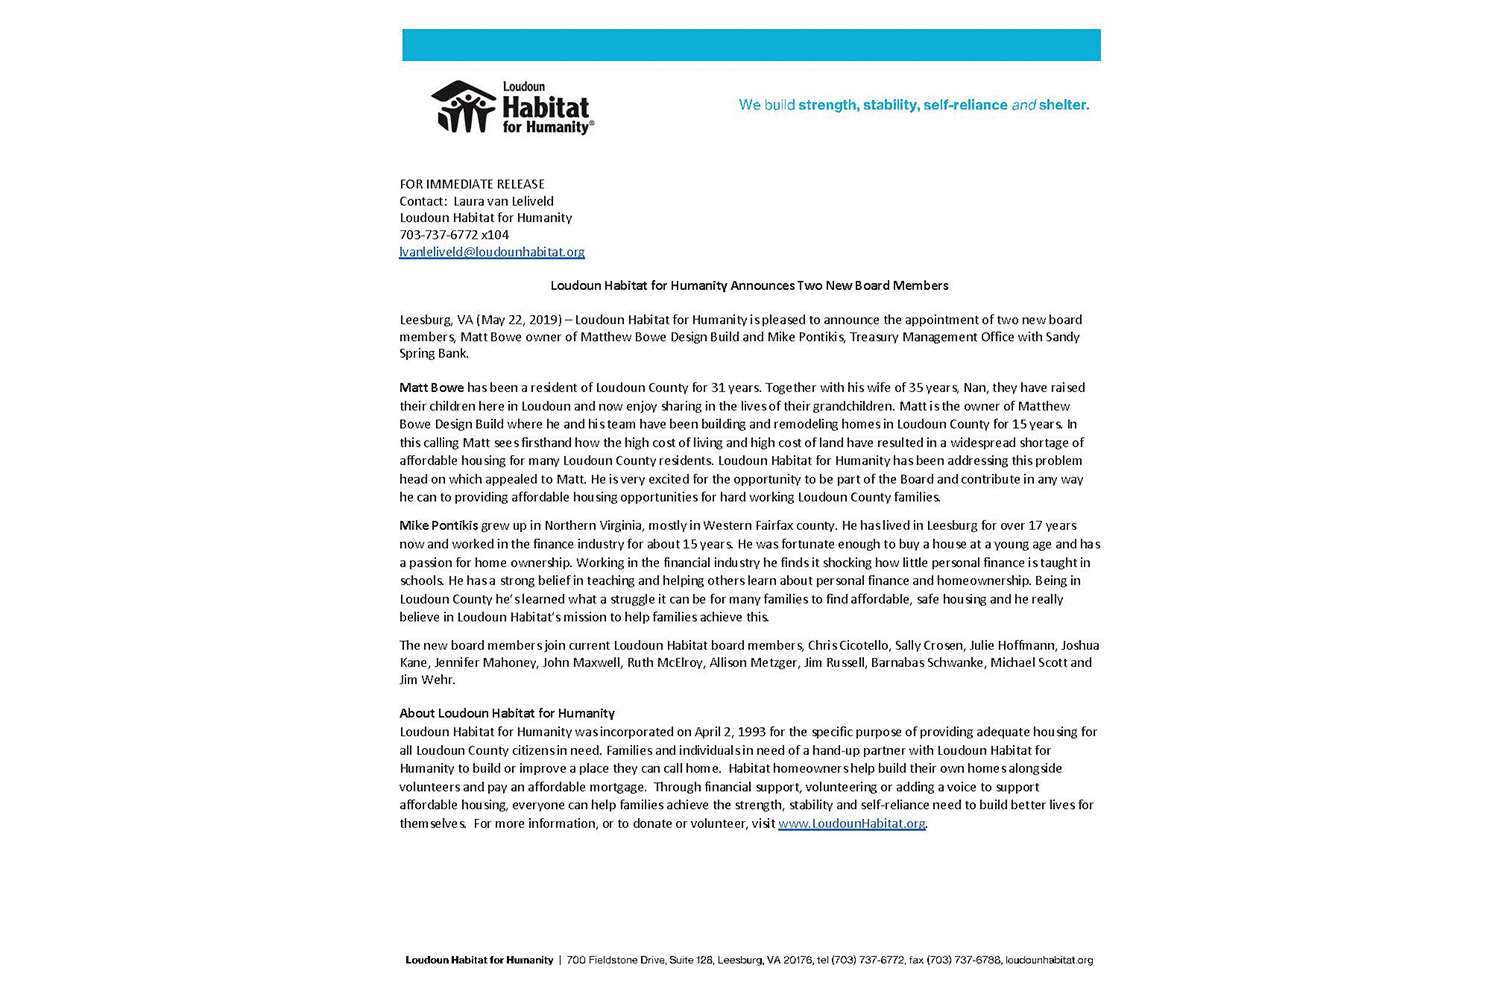 Loudon Habitat for Humanity Announces Two New Boards Members